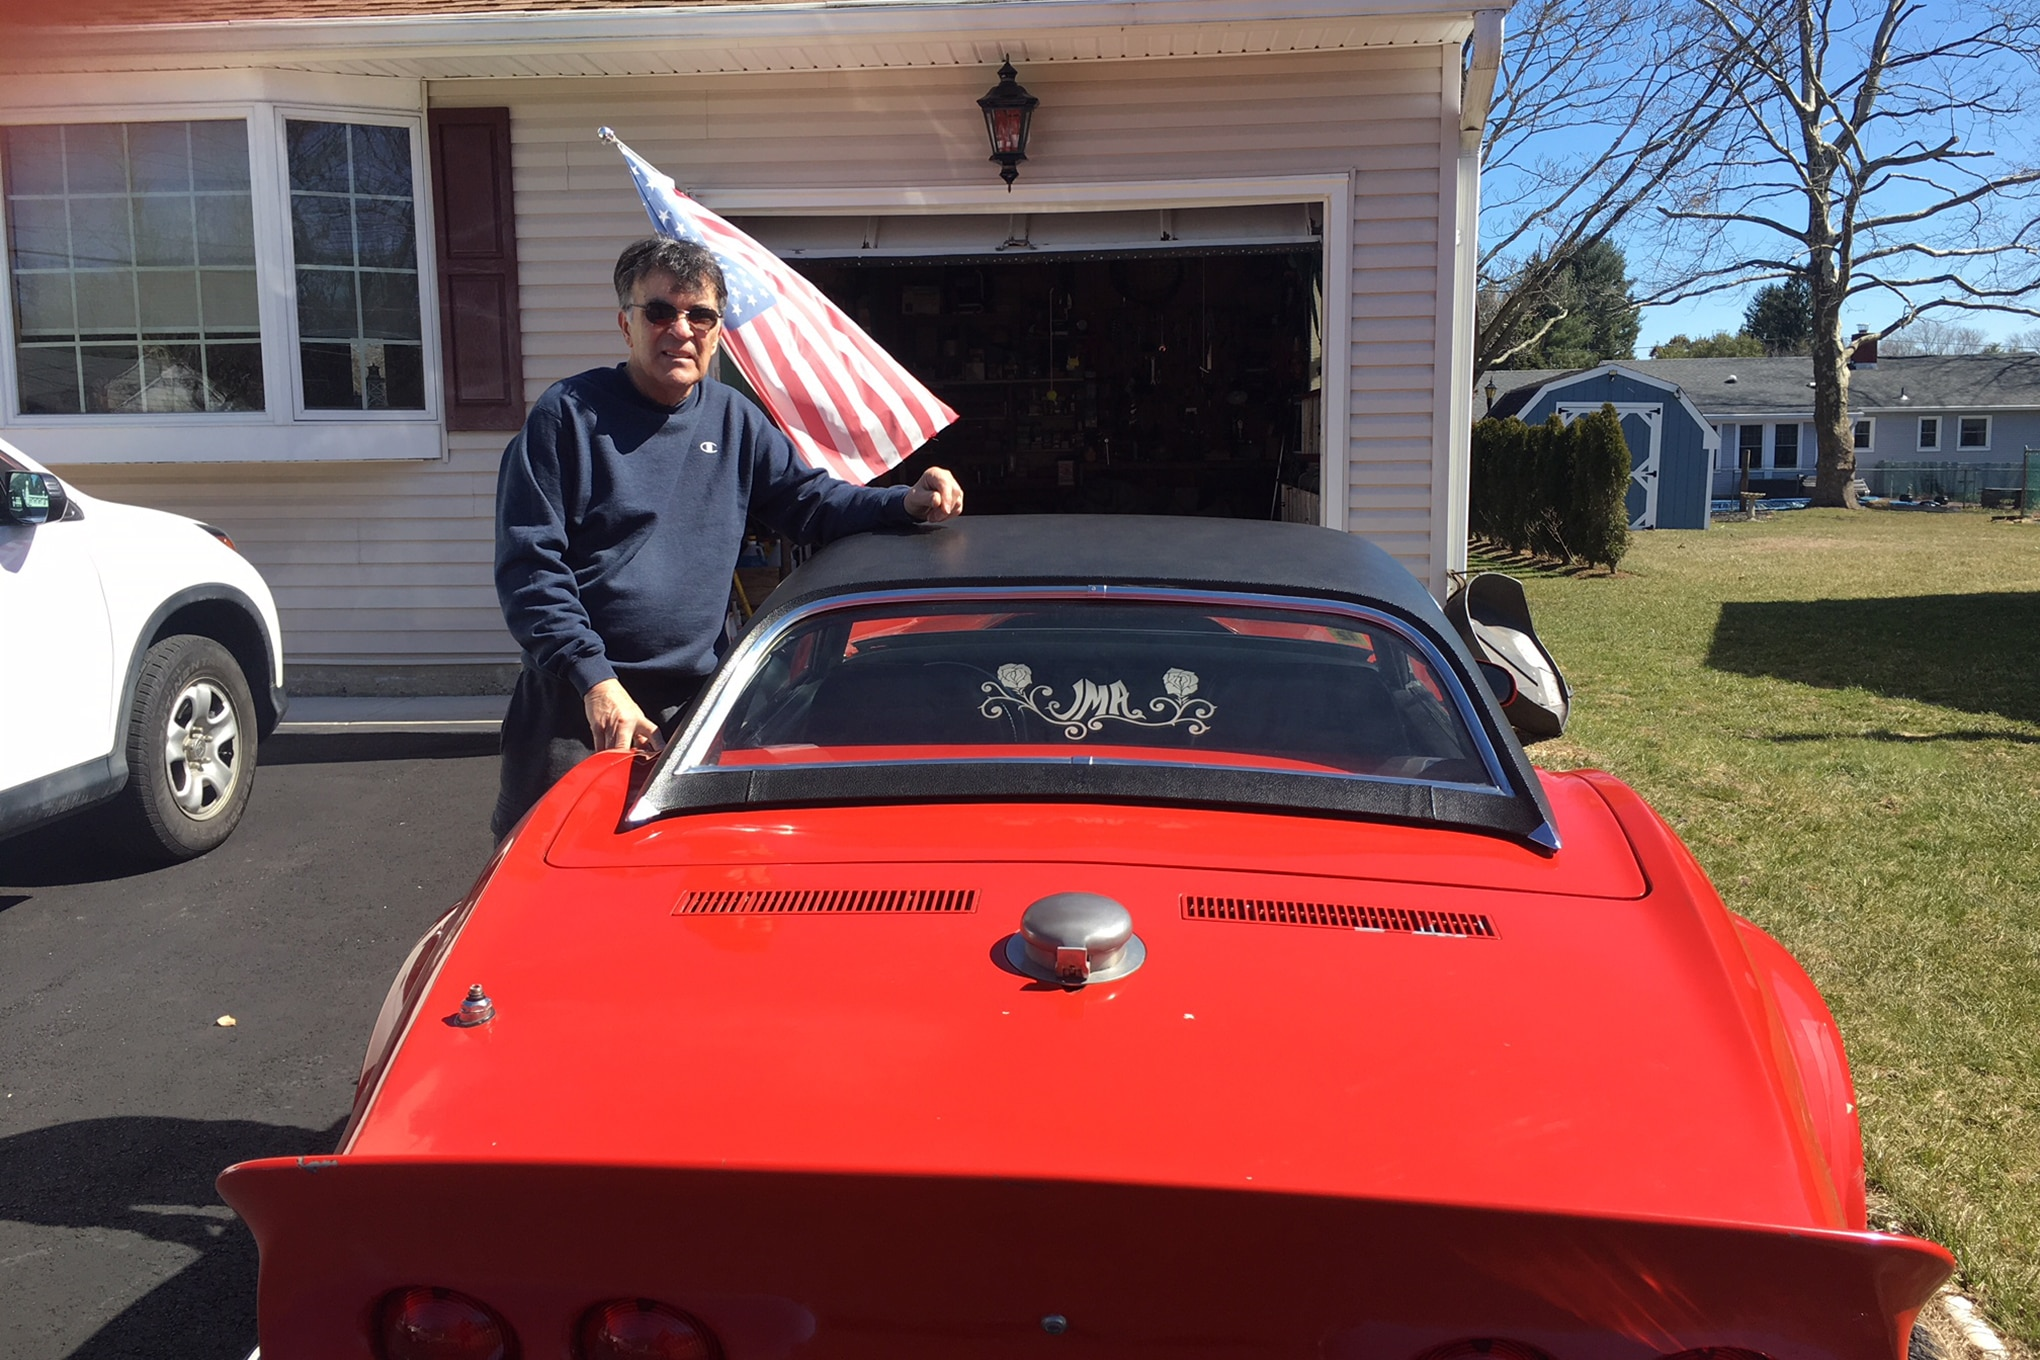 Vietnam Vet Modified 1969 Corvette Stored Over 40 Years